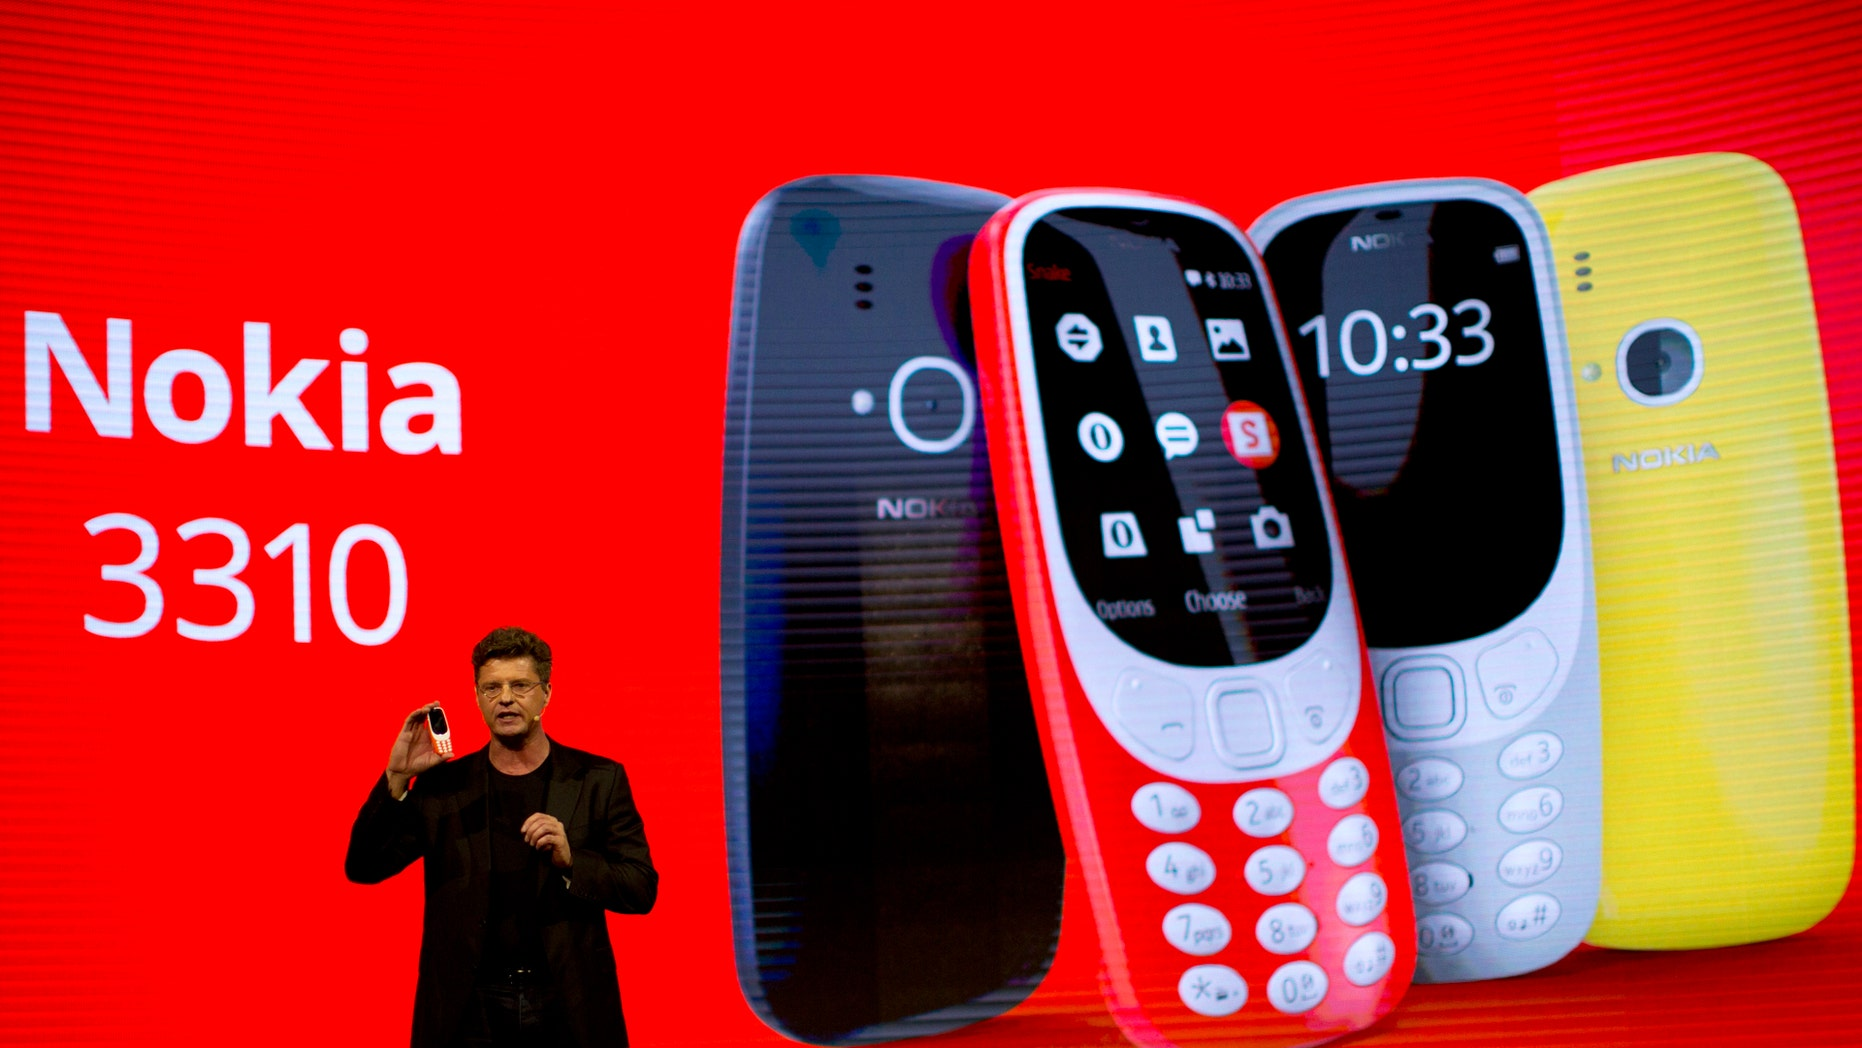 Arto Nummela, Chief Executive Officer at HMD Global, shows the new re-launched Nokia 3310 phone, ahead of Monday's opening of the Mobile World Congress wireless show in Barcelona, Spain, Sunday, Feb. 26, 2017. (AP Photo/Emilio Morenatti)